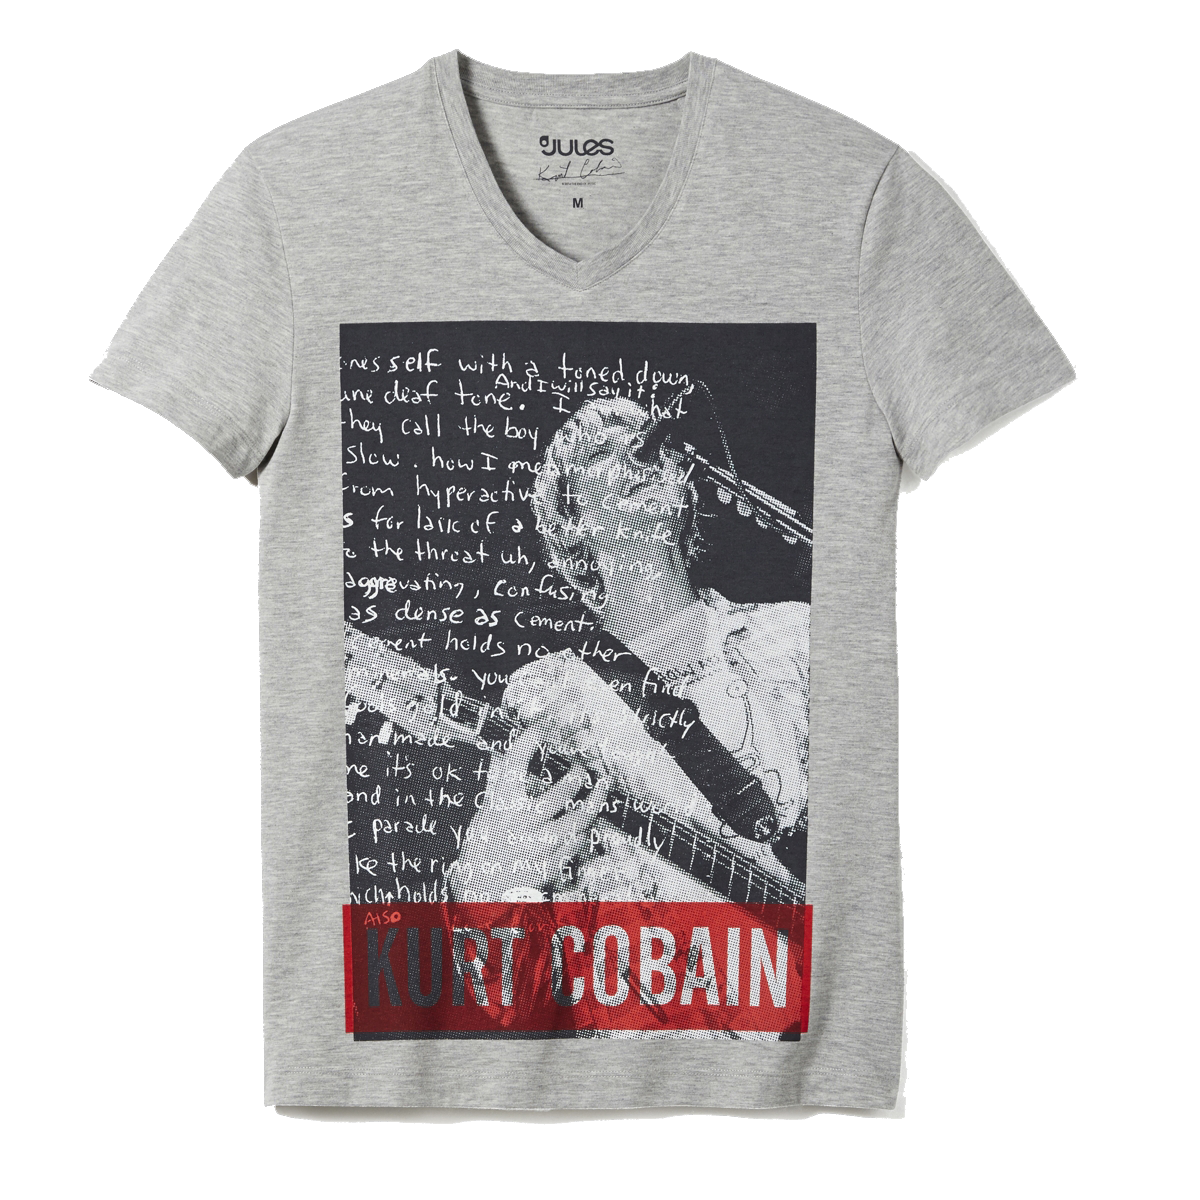 JULES, JULES-Nirvana, Nirvana, Kurt-Cobain, Nirvana-Kurt-Cobain, Come-As-You-Are, mens-clothing, mens-clothes, mens-designer-clothes, designer-menswear, du-dessin-aux-podiums, dudessinauxpodiums, mens-designer-clothing, mens-clothing-sale, mens-clothing-online, cheap-suits, shirts-for-men, t-shirt, vetements-homme, vetement-fashion, vetements-enfants, fashion-mode, mode-fashion, site-de-mode, vetement-pour-femme, magasin-vetement-homme, chemise-homme